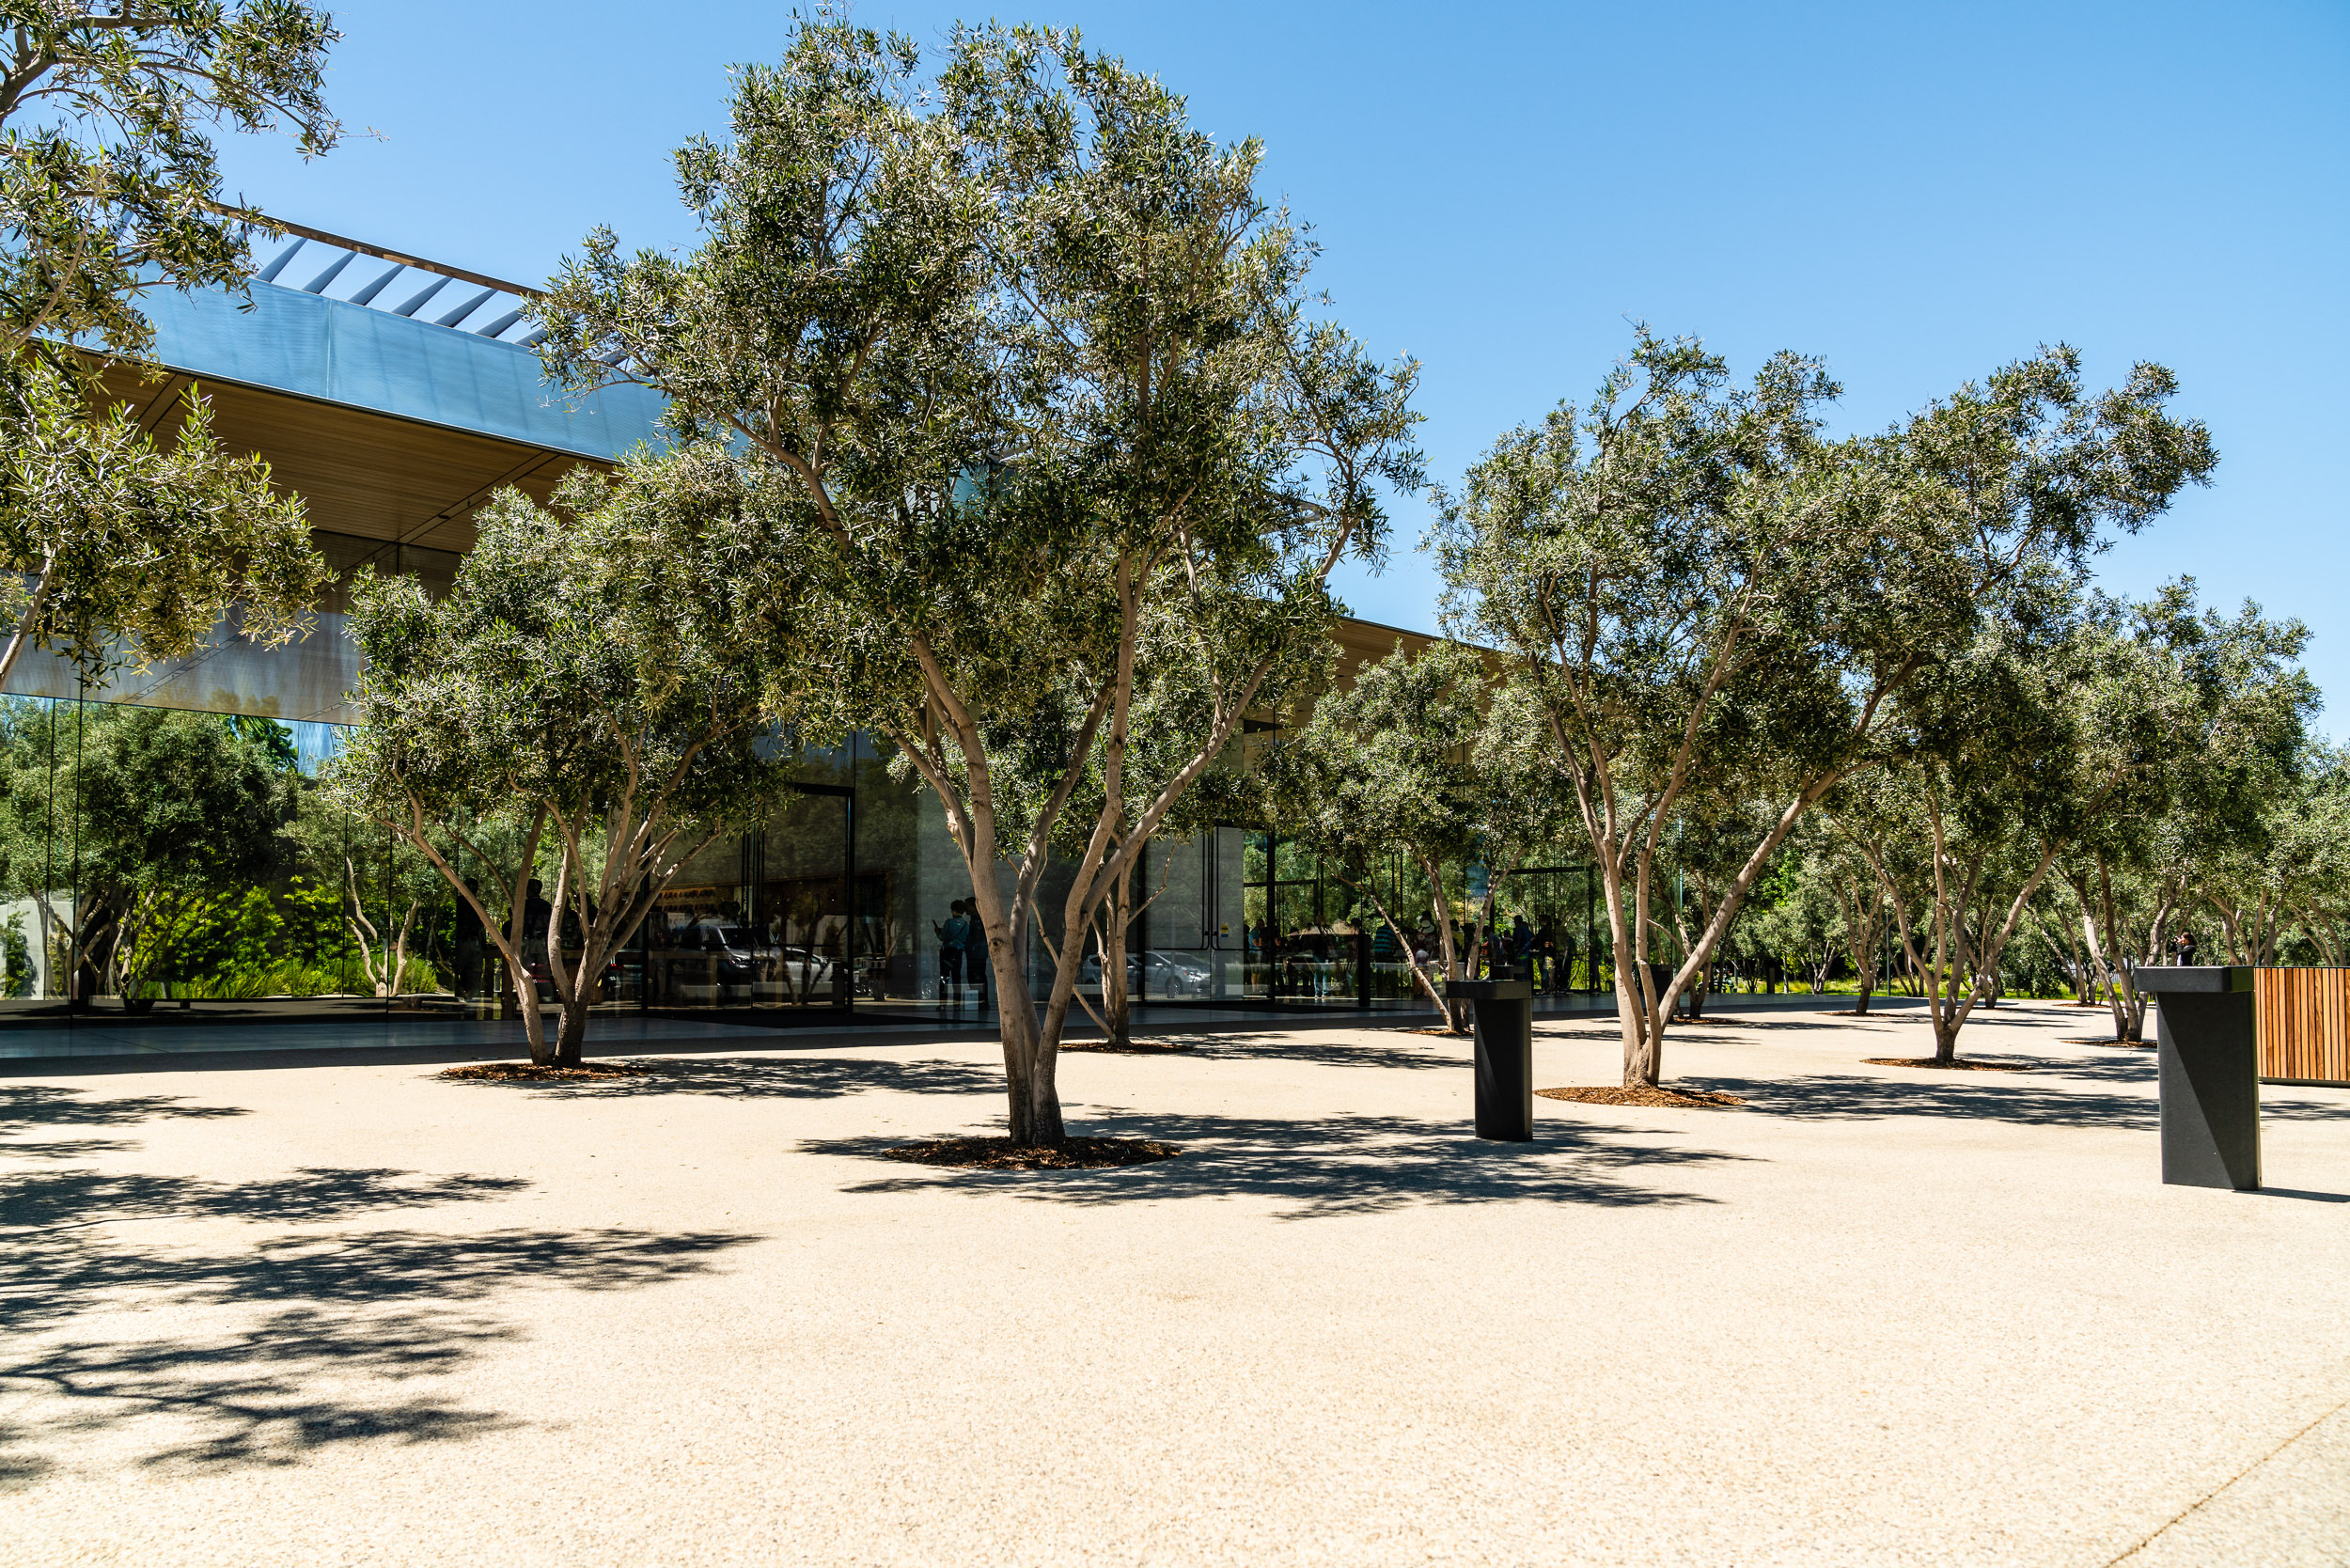 Give it another year or so for these trees to be completely grown and the courtyard should be properly lush.